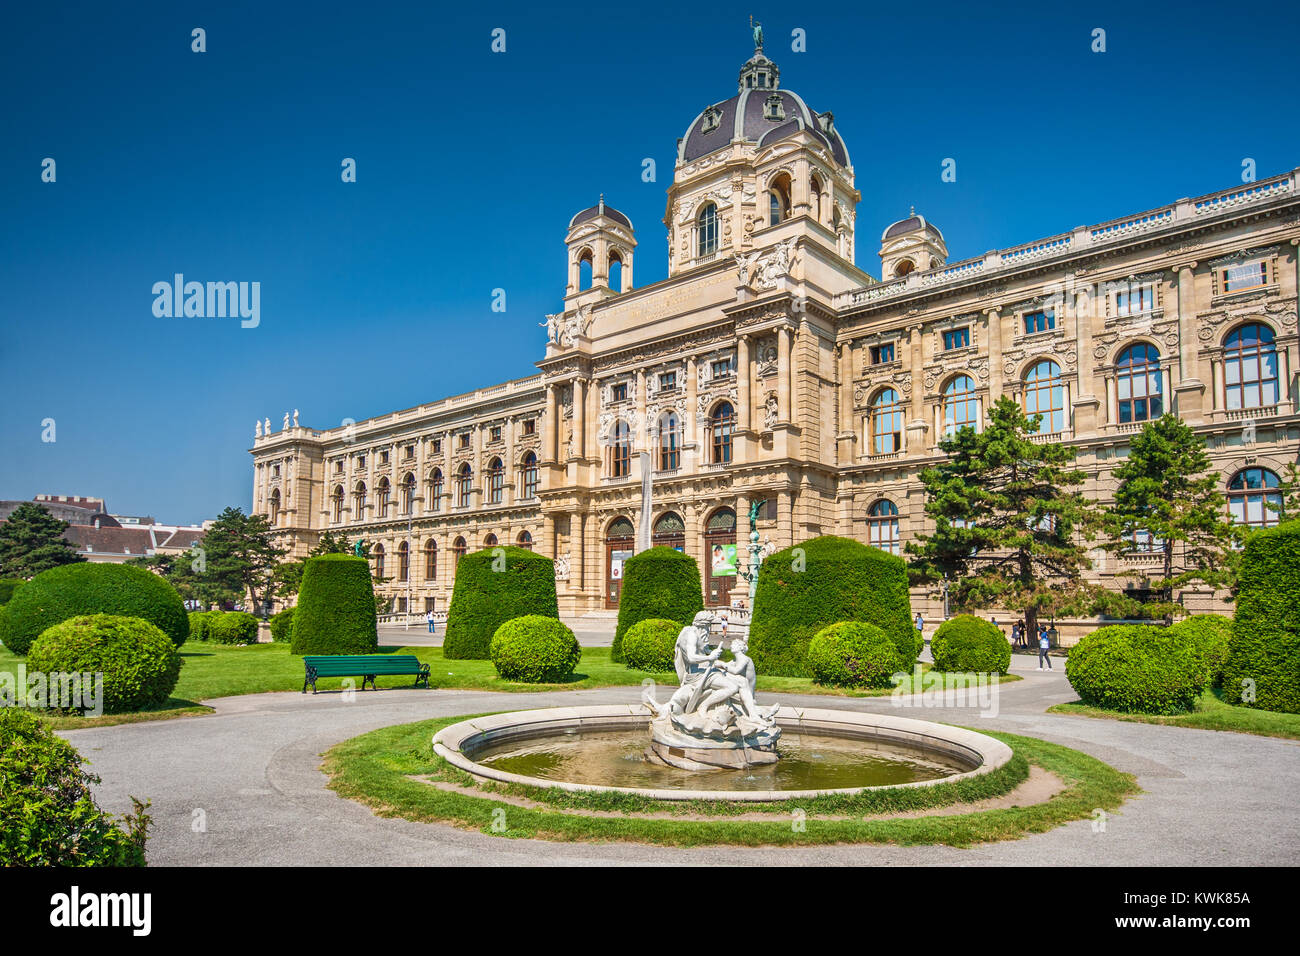 Beautiful view of famous Naturhistorisches Museum (Natural History Museum) with park and sculpture in Vienna, Austria - Stock Image